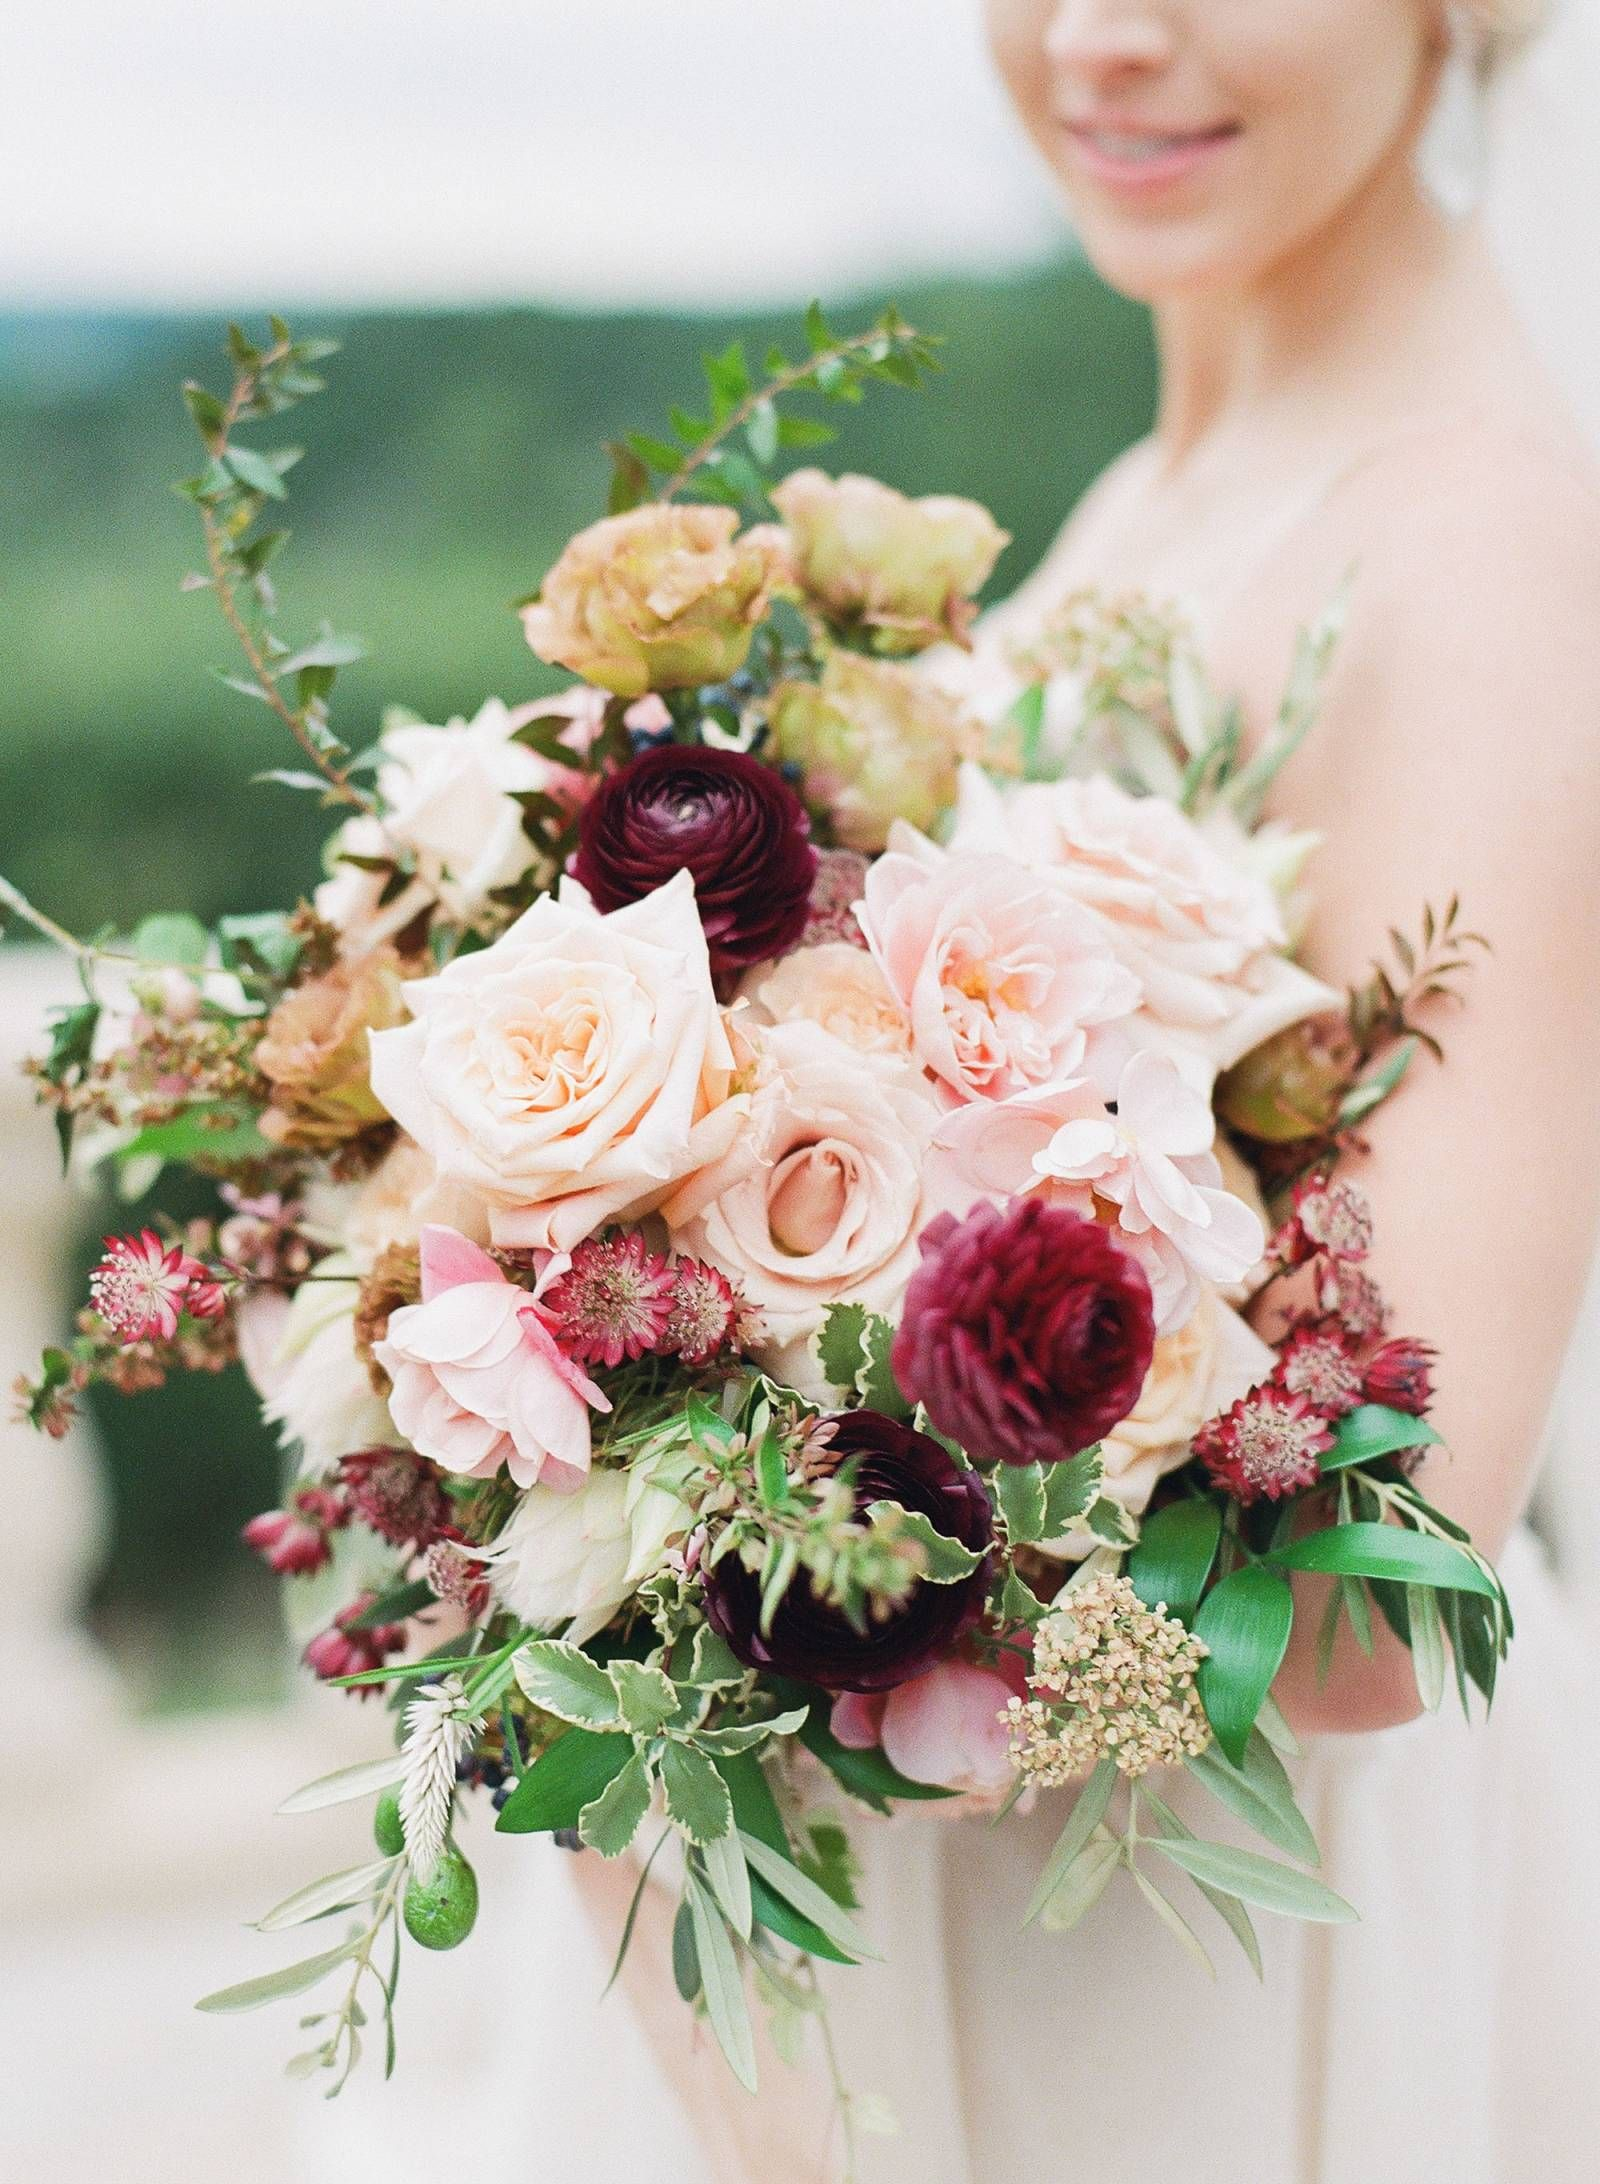 Elegant Old World Style Meets Modern Party Vibe At This Austin Wedding Via Magnolia Rouge In 2020 Wedding Flowers Bridal Bouquets Austin Wedding Bridal Flowers